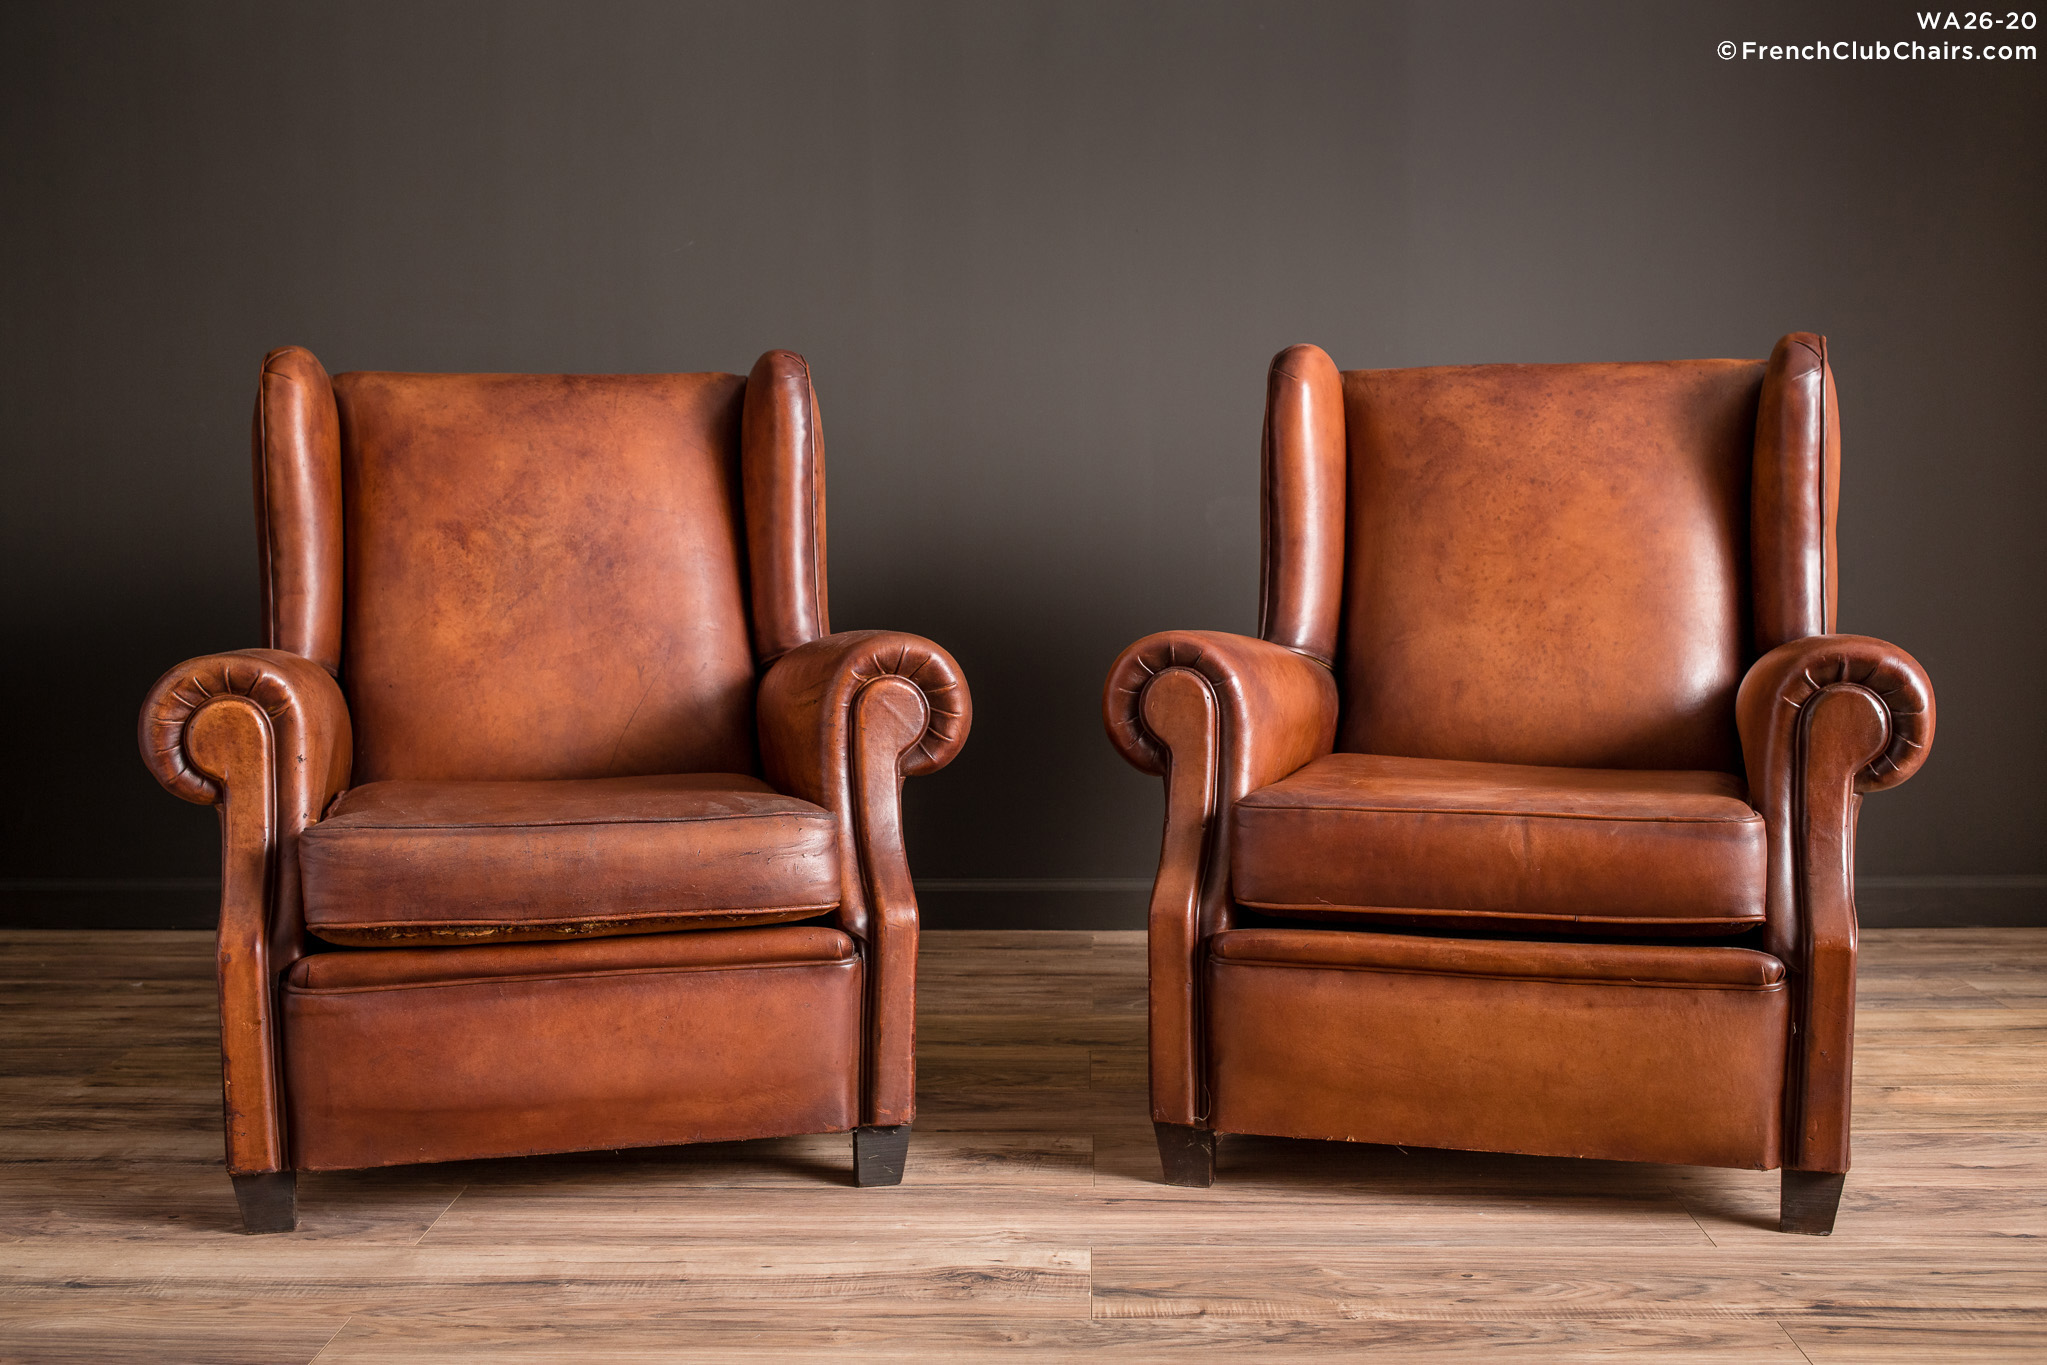 WA_26-20_Geneva_Wingback_Pair_R_1TQ-v01-williams-antiks-leather-french-club-chair-wa_fcccom